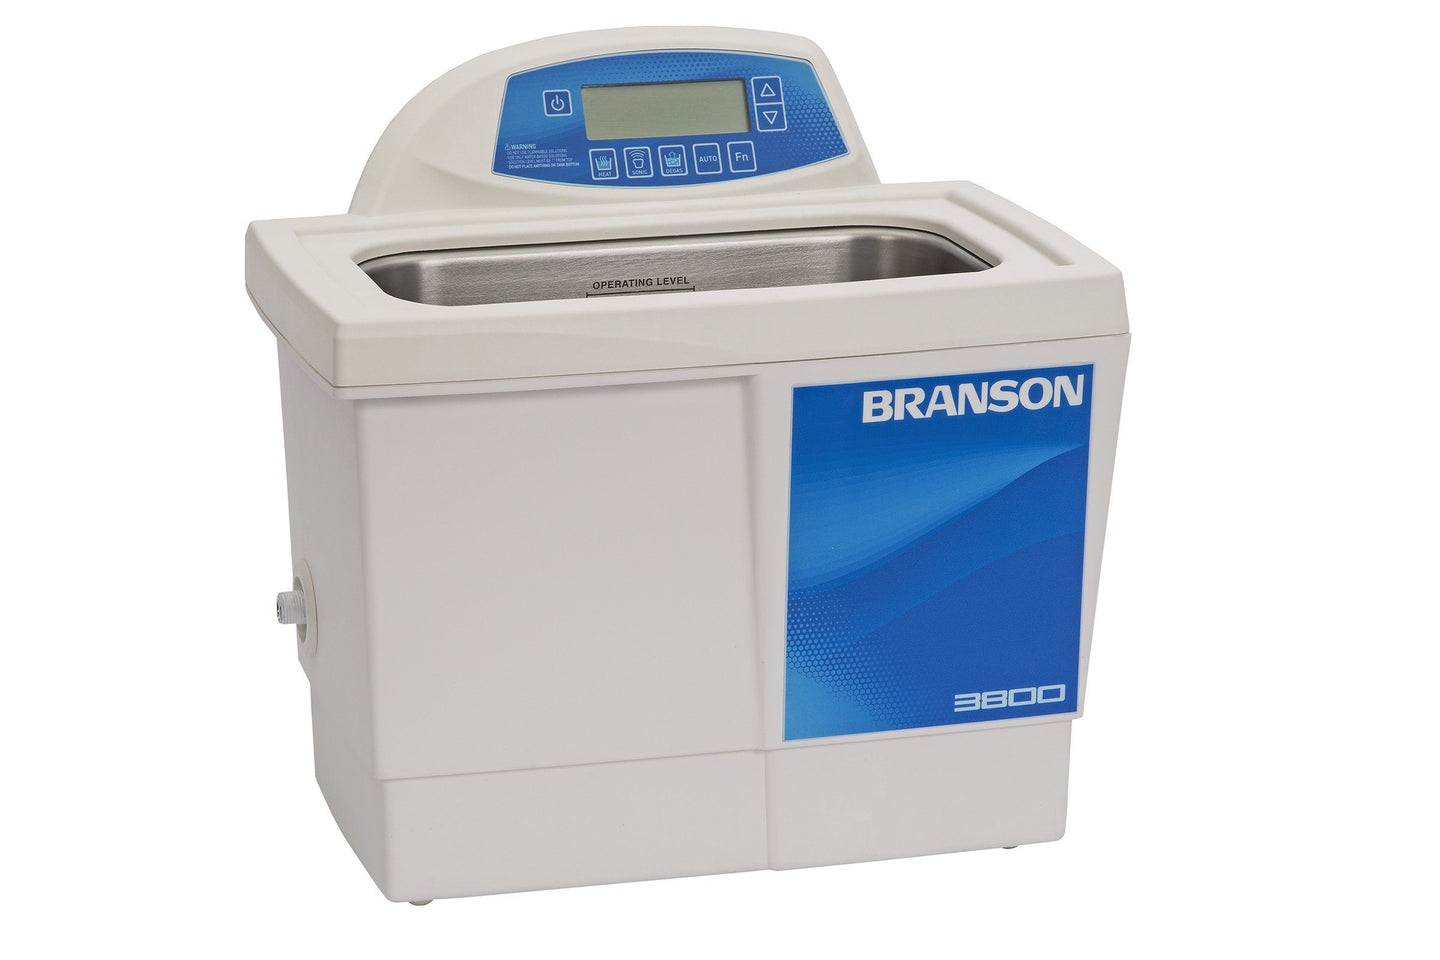 Branson CPX3800H Ultrasonic Cleaner with Digital Timer, Heater & Degas, 1.5 Gallon - leadsonics